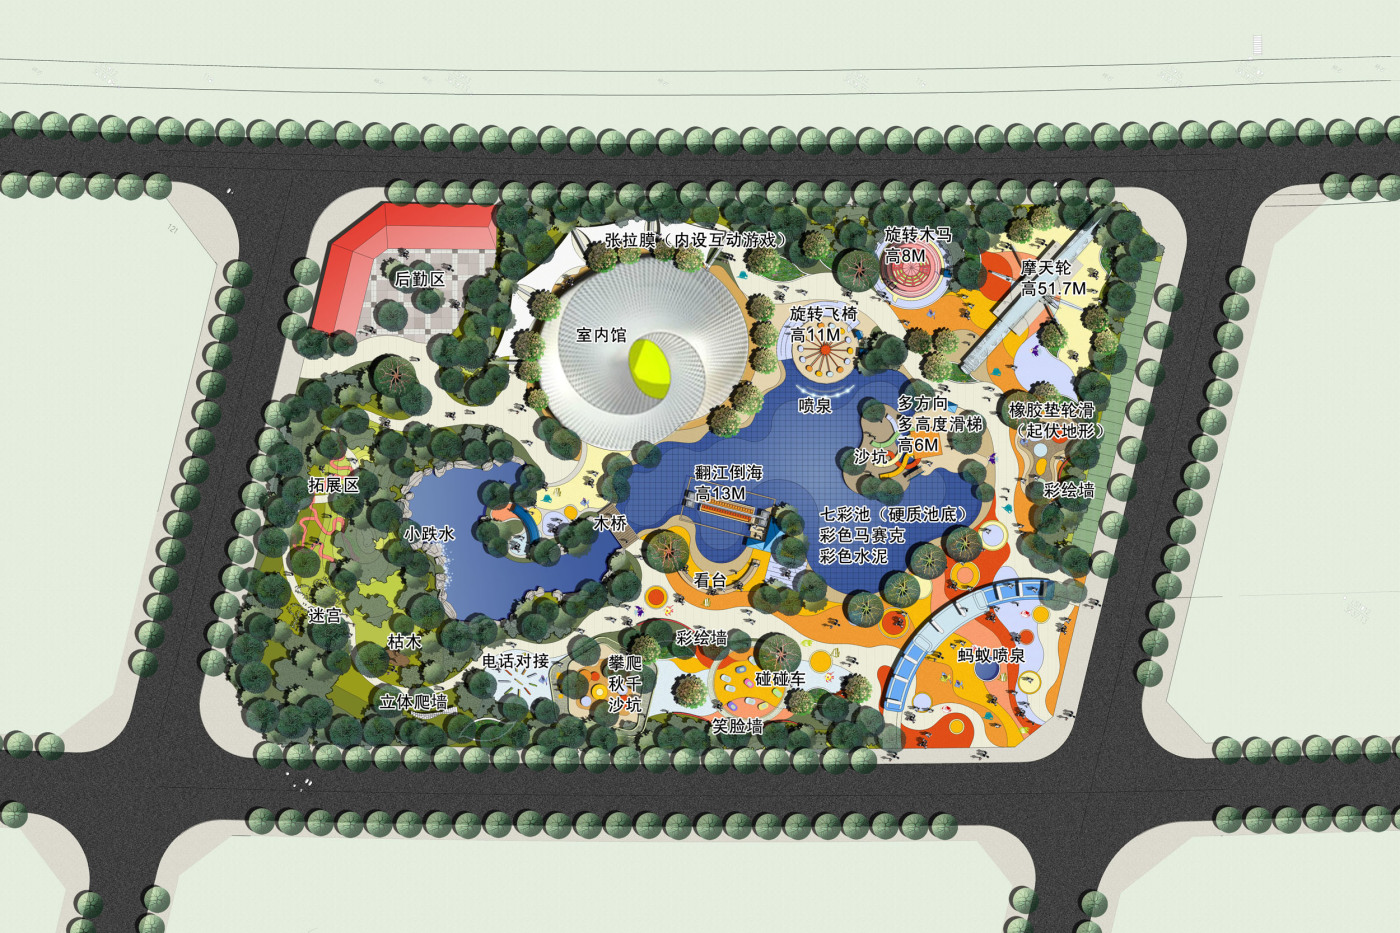 children's park plan